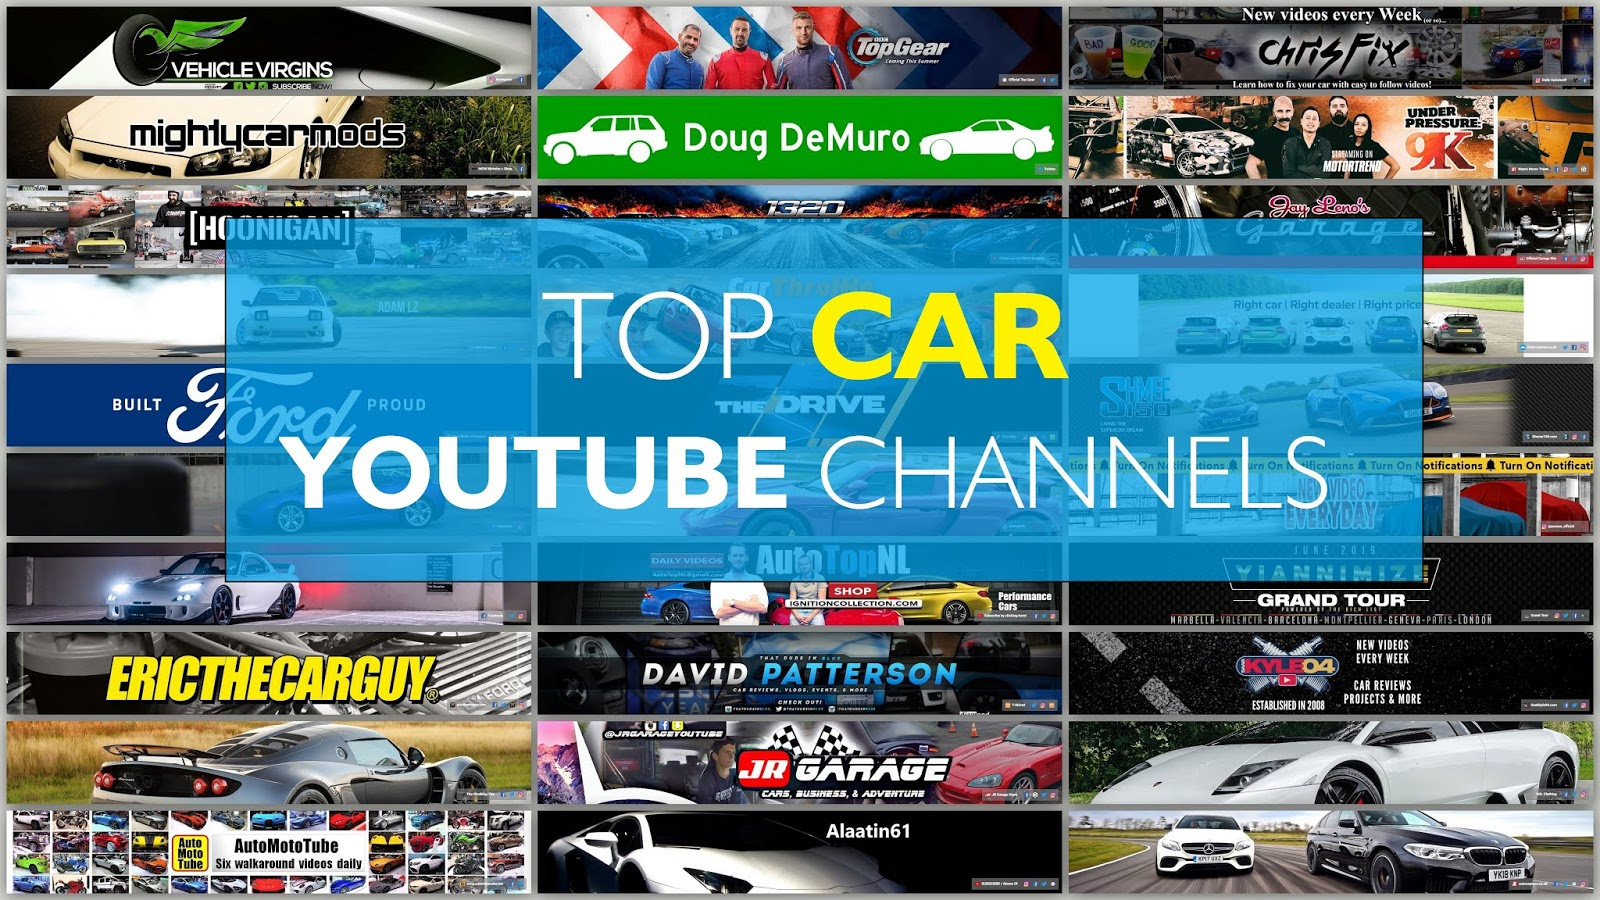 Top Car YouTube Channels Rank